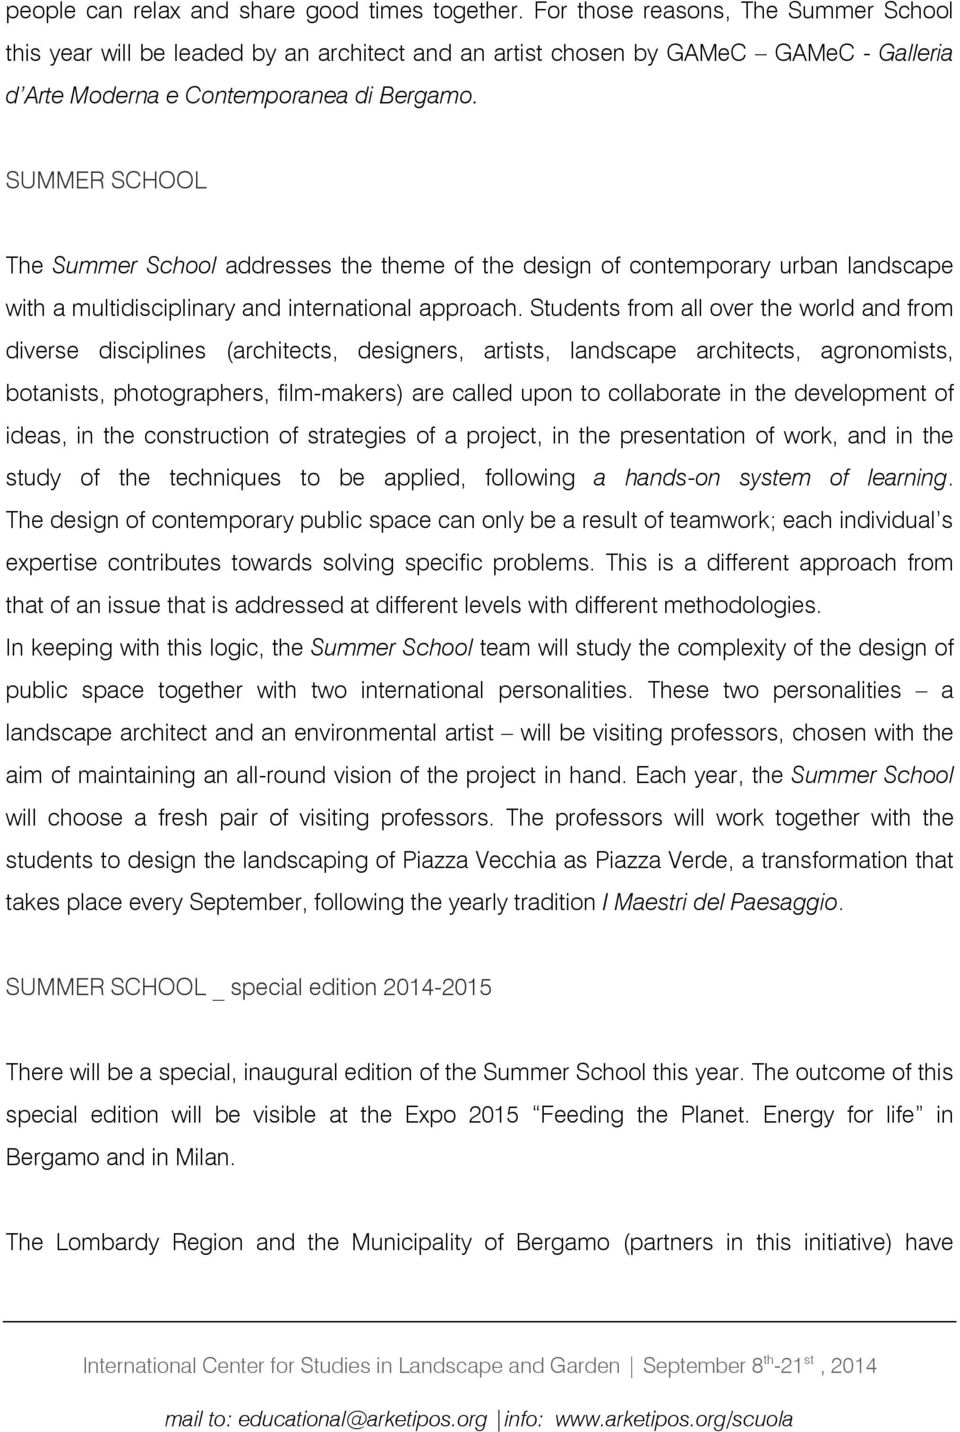 SUMMER SCHOOL The Summer School addresses the theme of the design of contemporary urban landscape with a multidisciplinary and international approach.